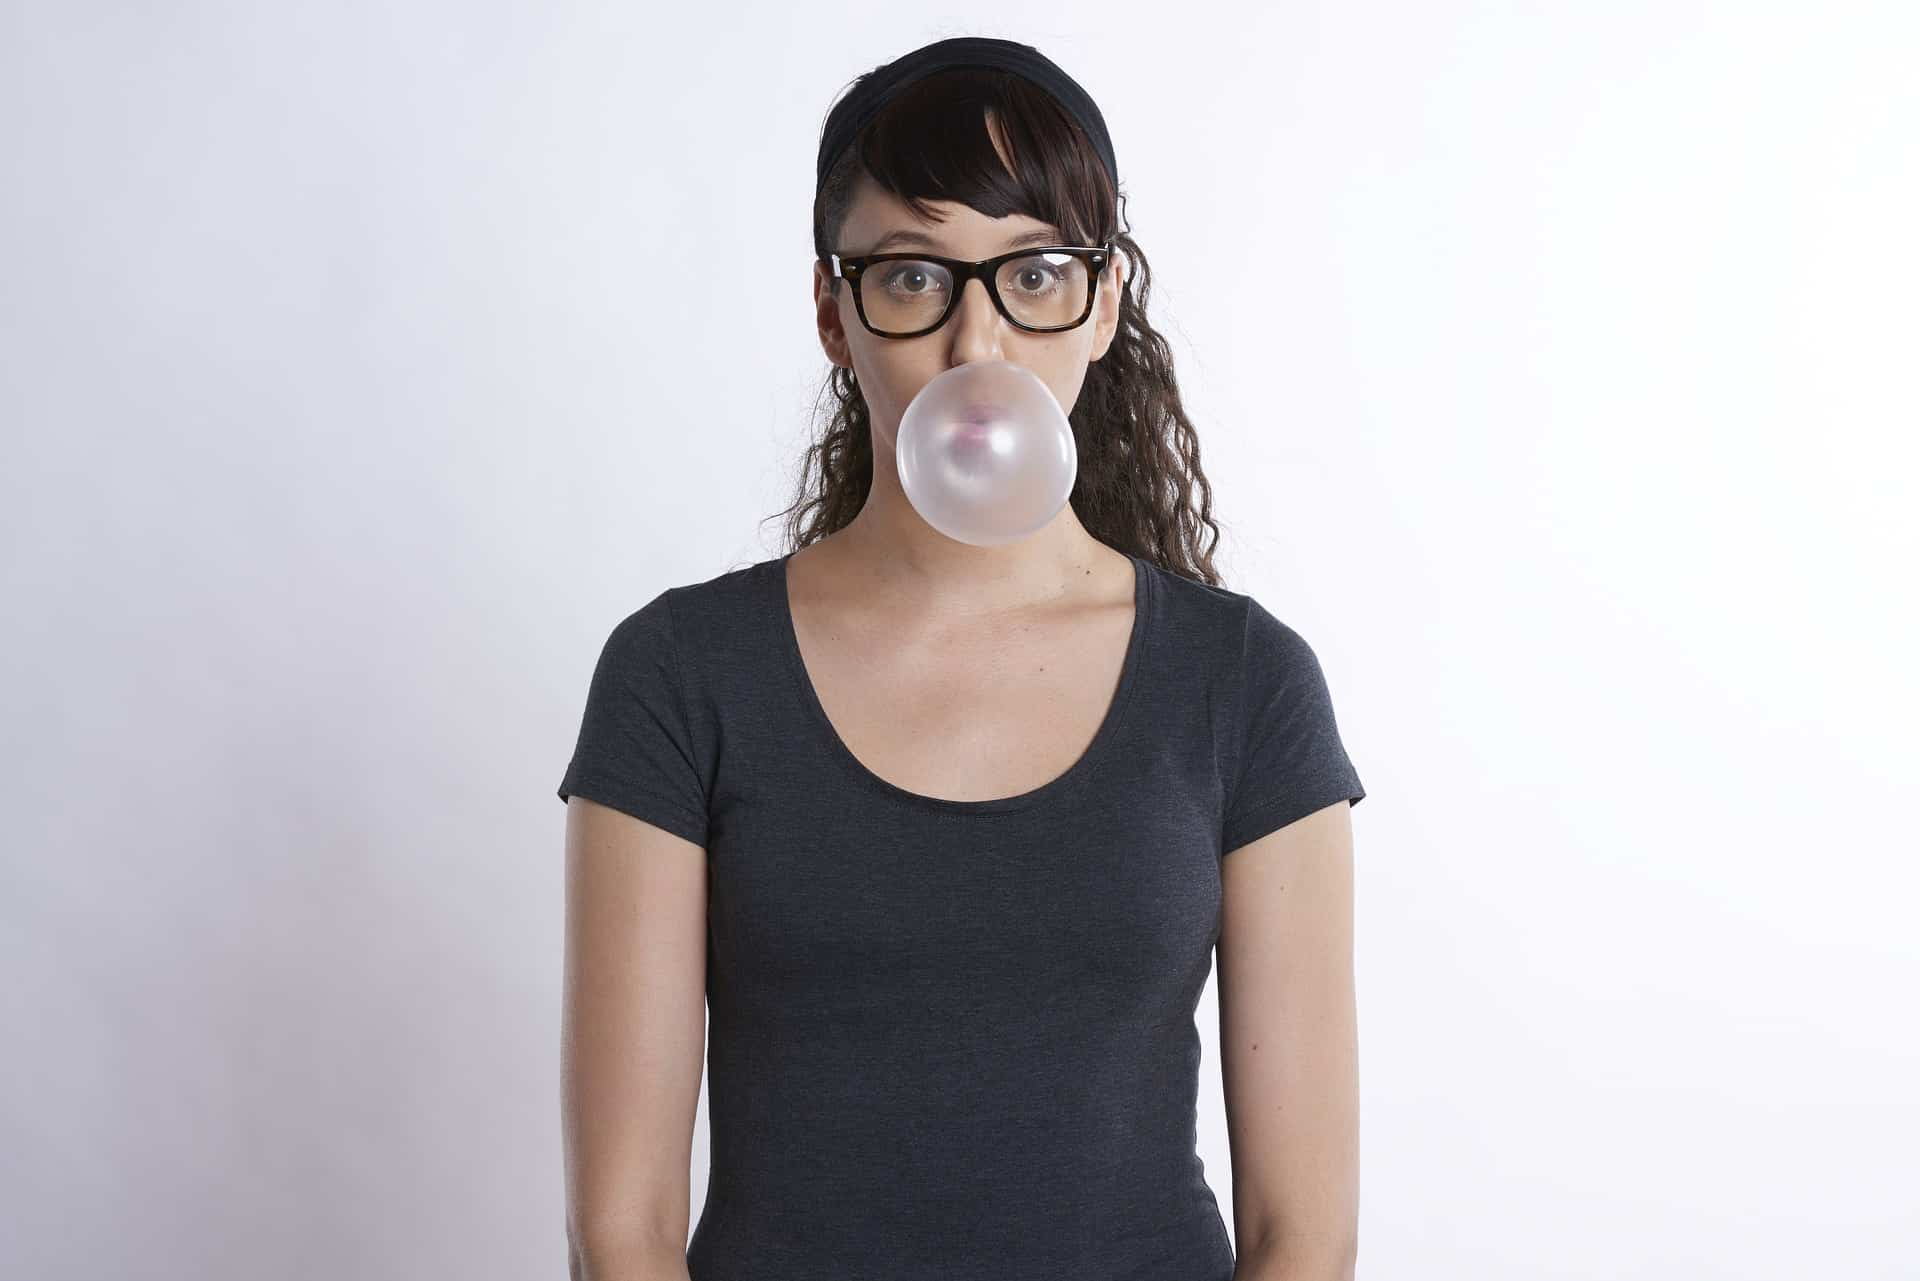 Does Chewing Gum Help You Lose Weight